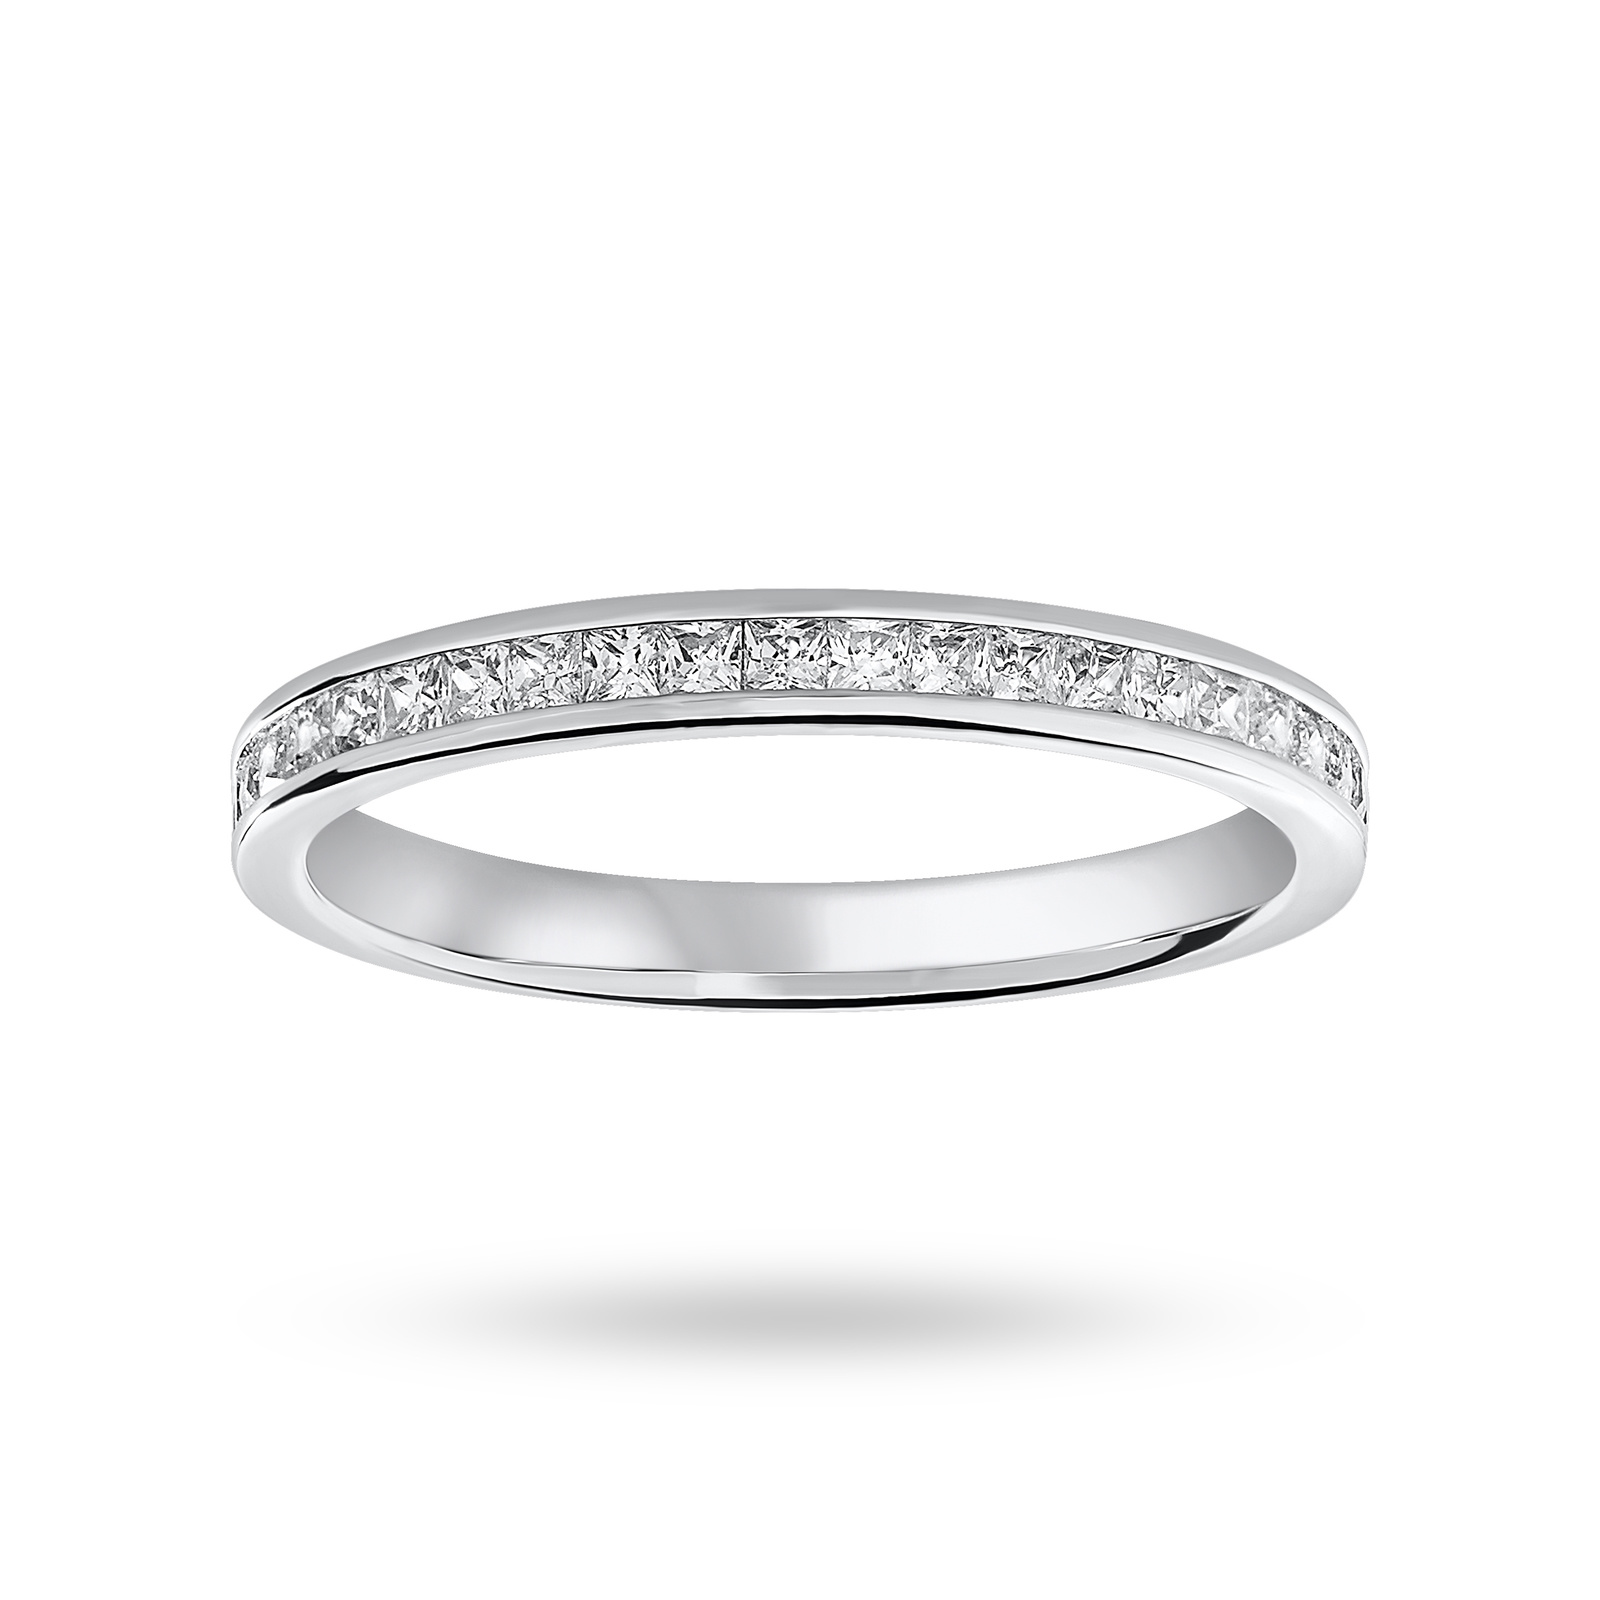 Platinum 0.33 Carat Princess Cut Half Eternity Ring